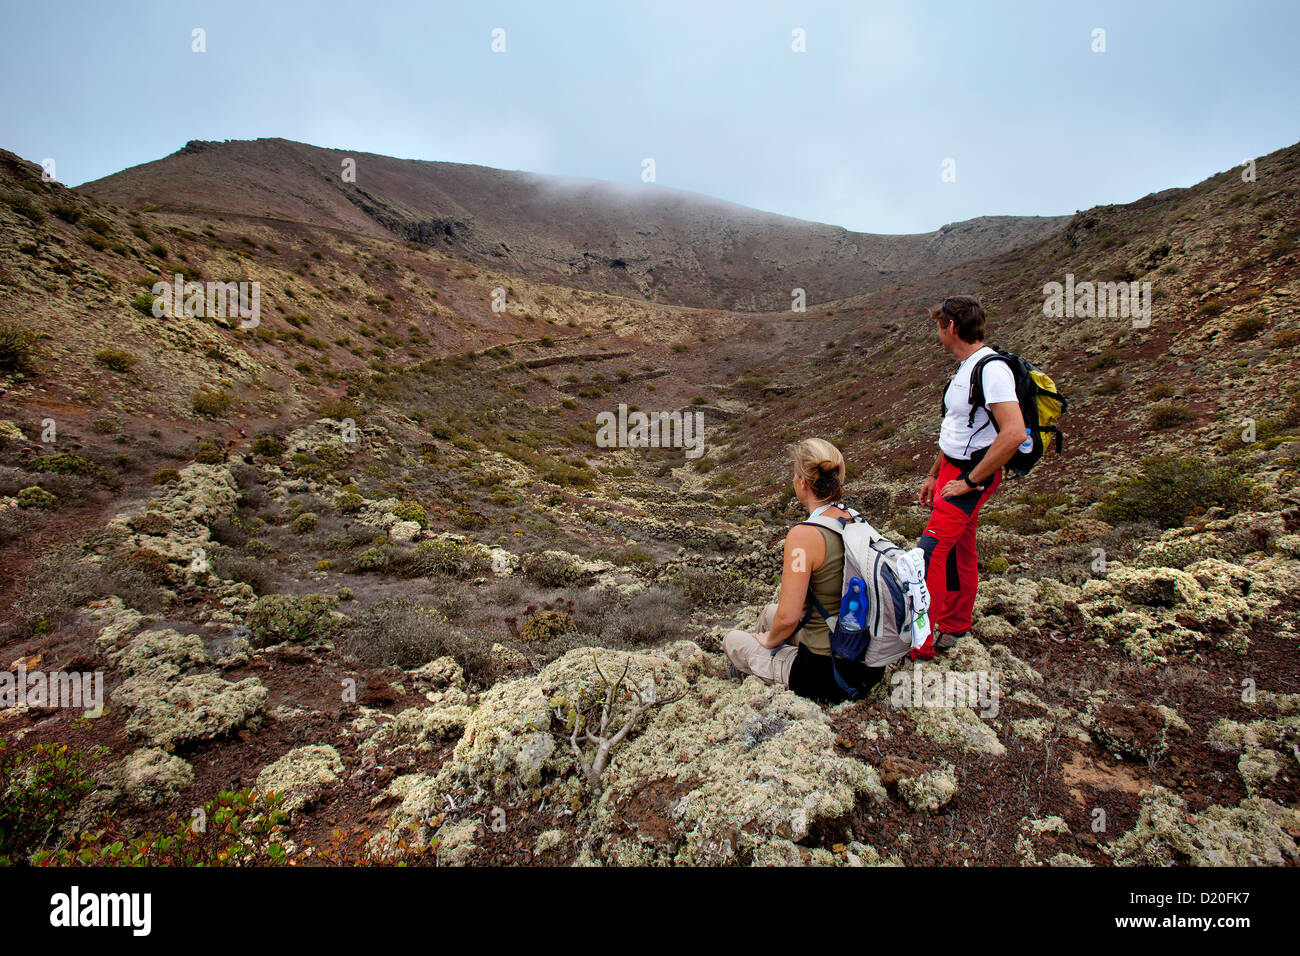 Hiker on top of volcan Los Helechos, Lanzarote, Canary Islands, Spain, Europe - Stock Image